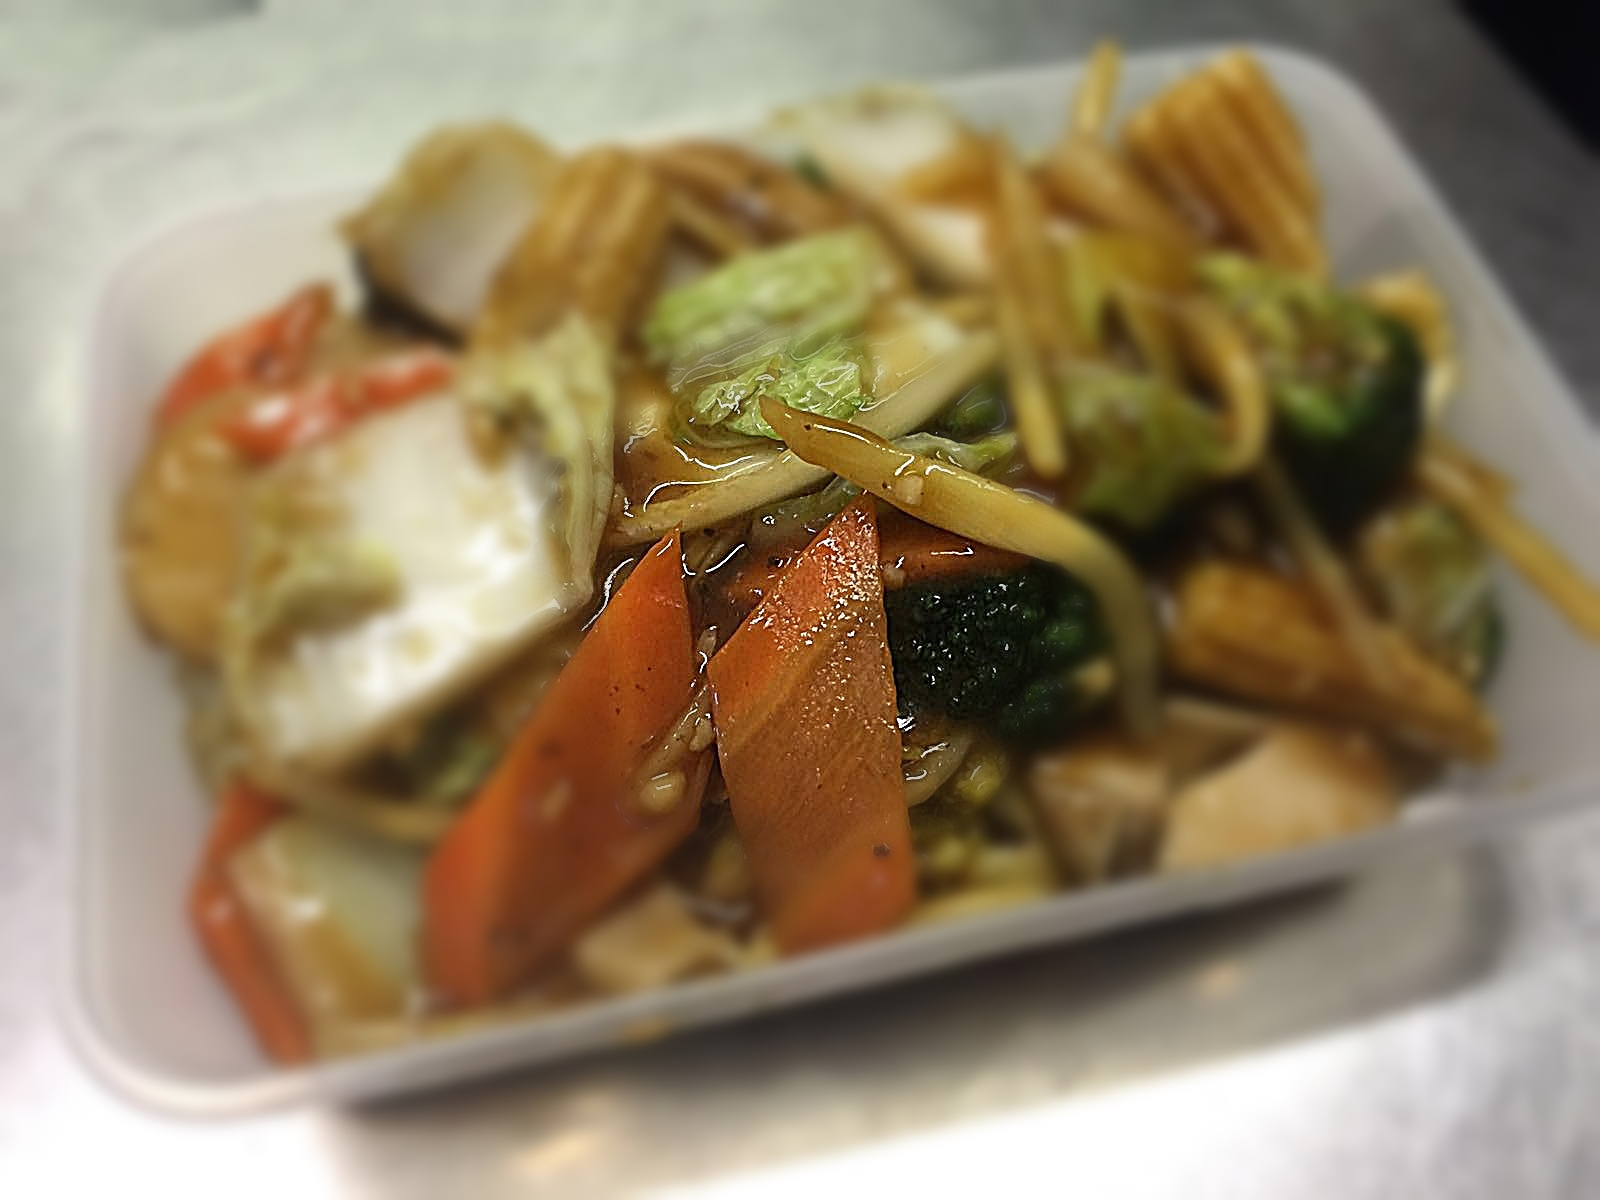 Mixed Vegetables in Satay Sauce